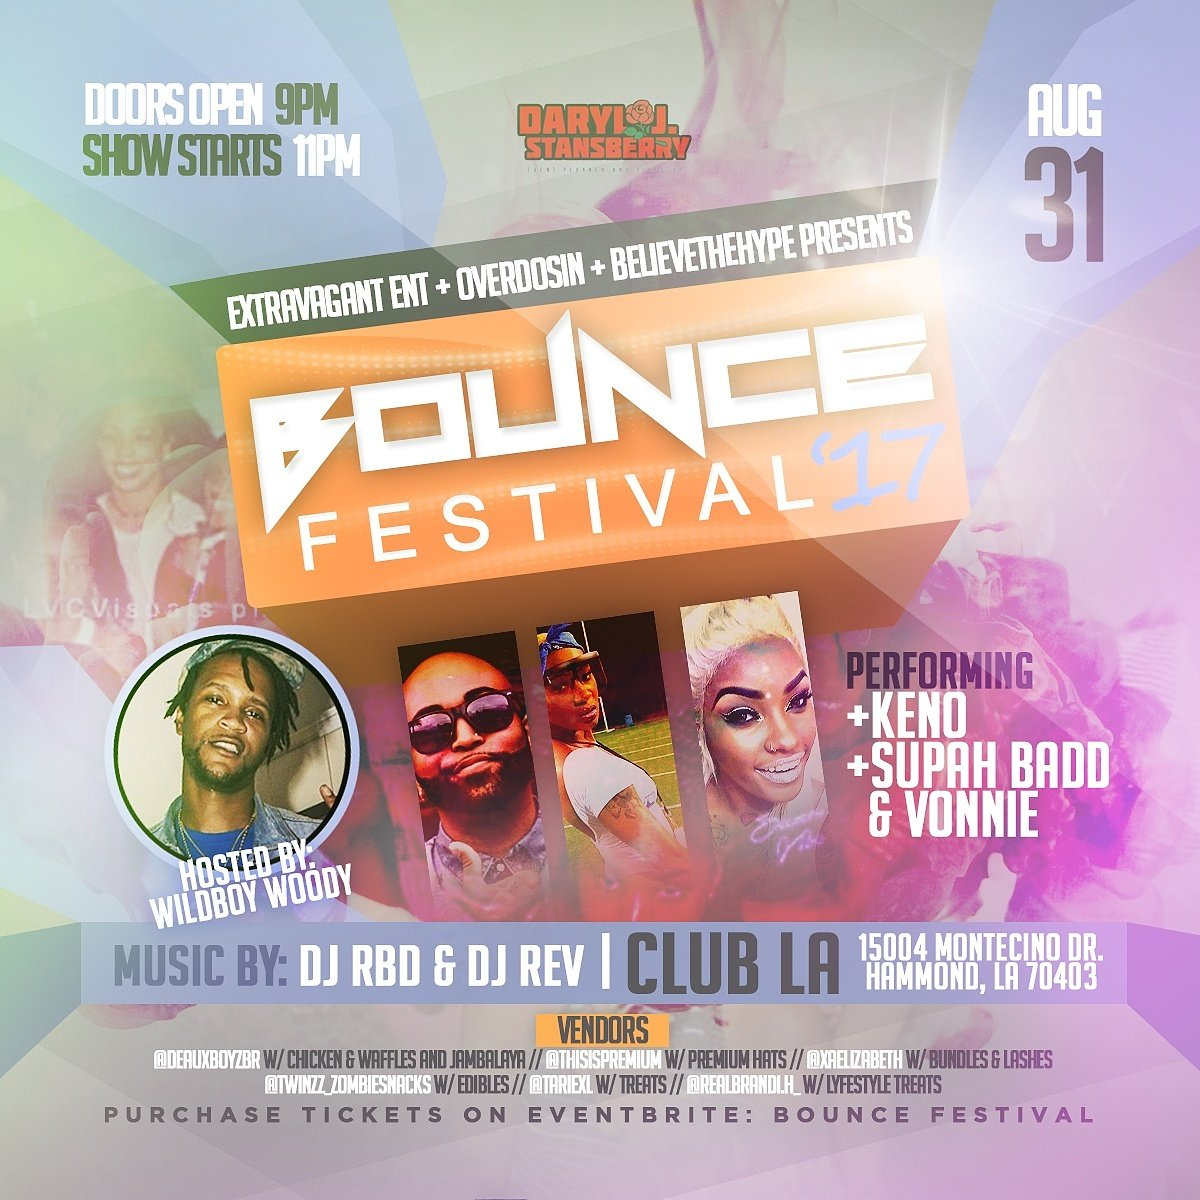 Thx 2 @Isee_daryl for allowing us 2 wrk on this project #fdellc #flyers #batonrouge #br #la #dance #drinks #fun #party #nightlife #music #31<br>http://pic.twitter.com/FlFnKUVqir